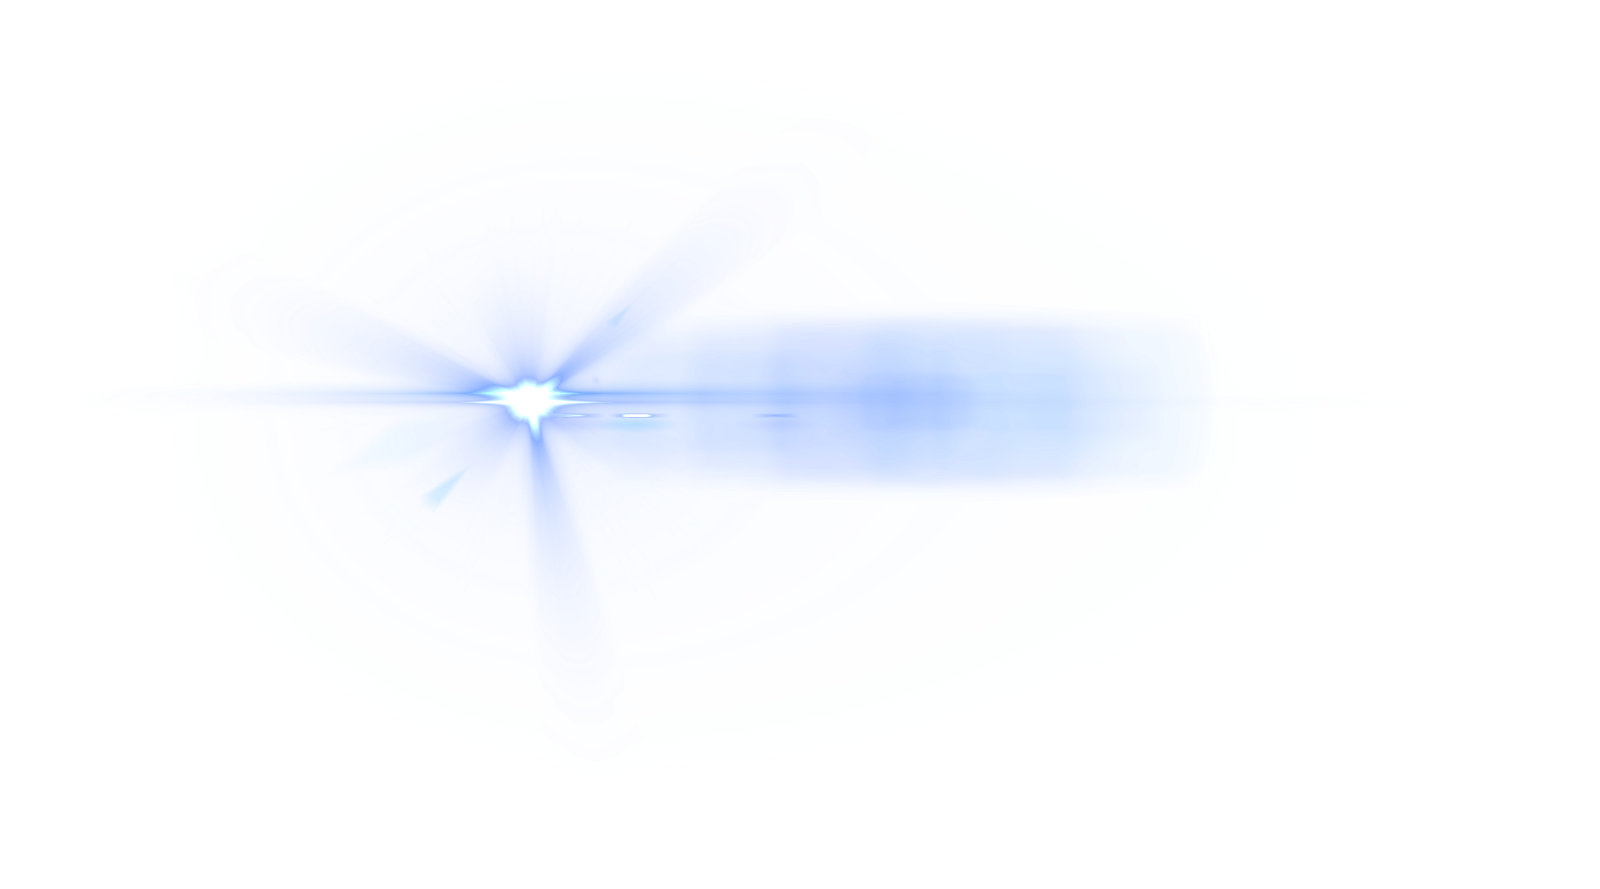 Lens flare transparent png. Free logos picture